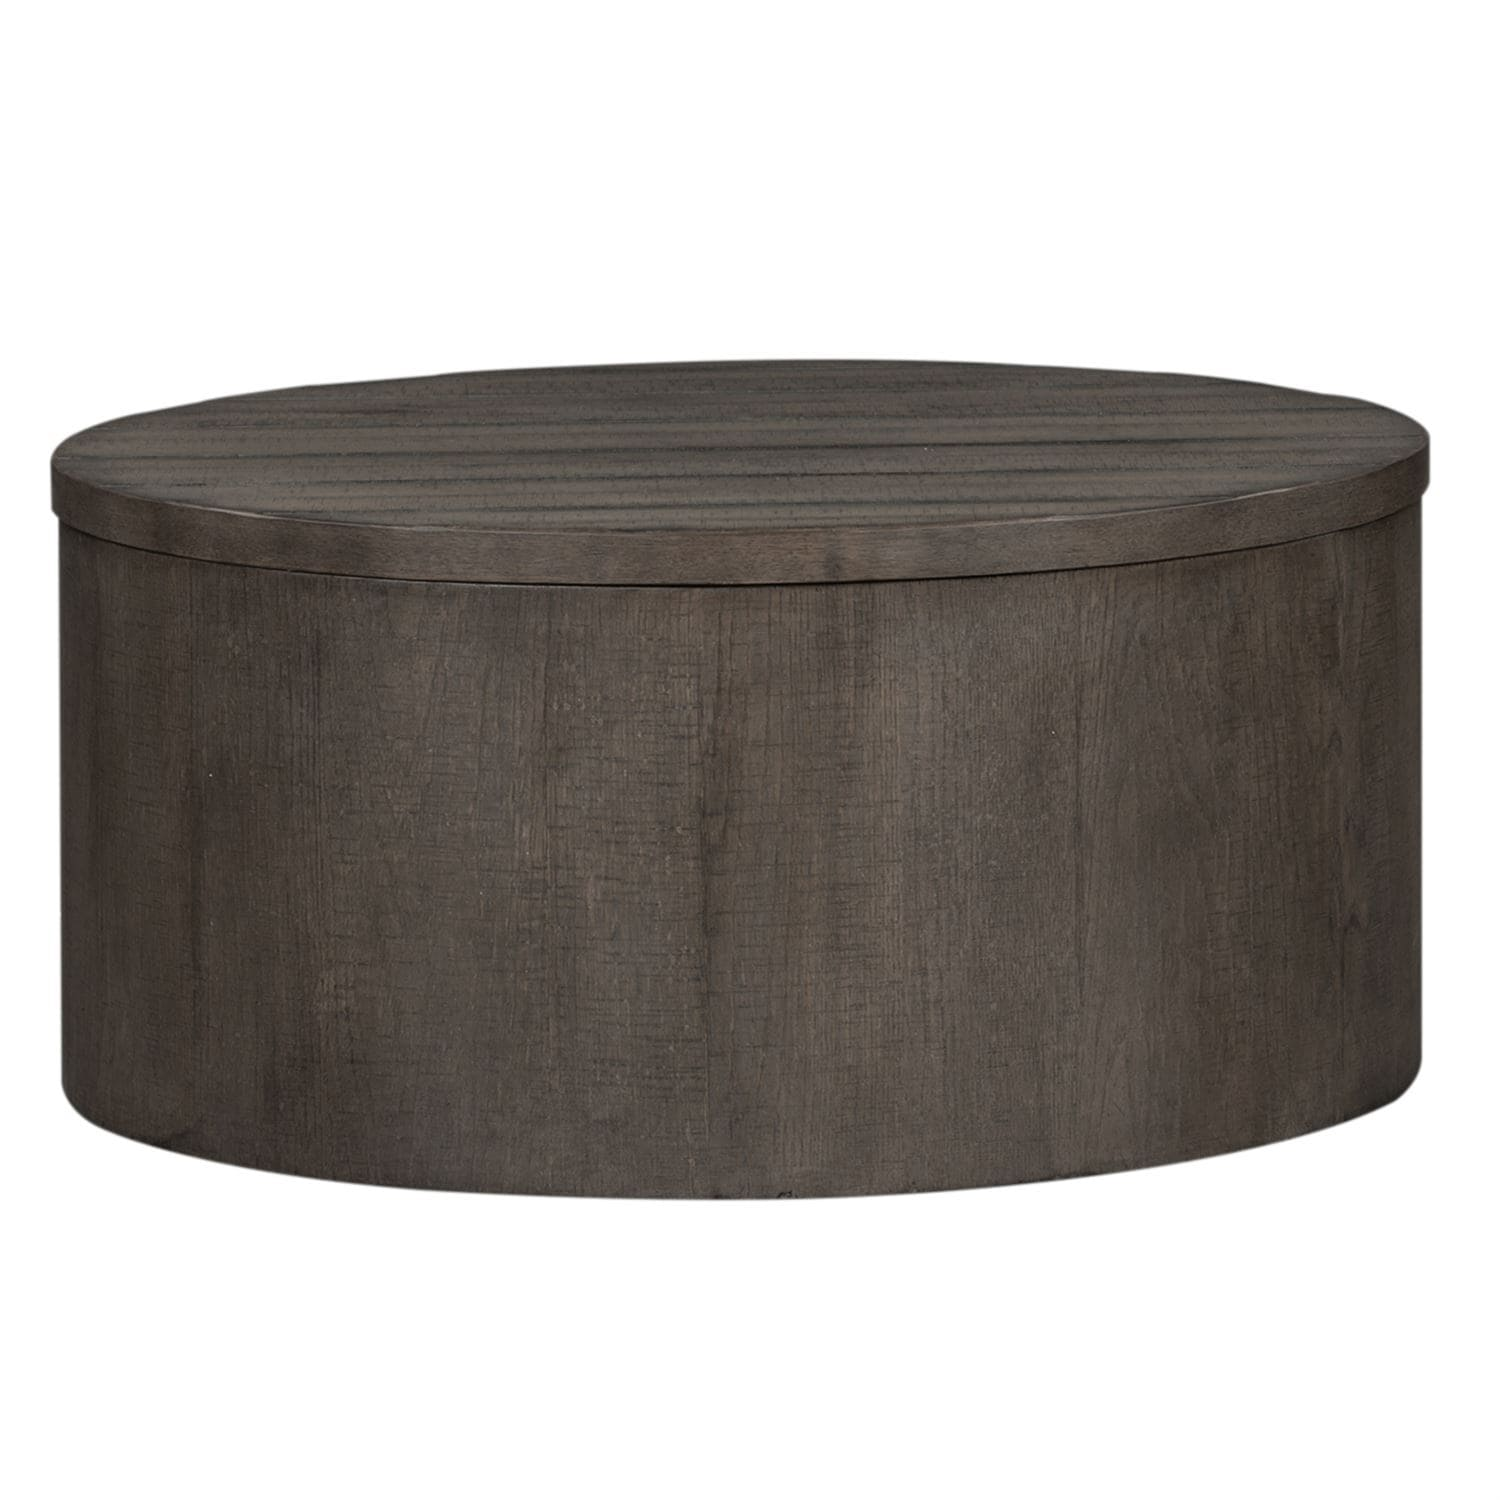 Shop Modern Farmhouse Dusty Charcoal Drum Cocktail Table On Sale